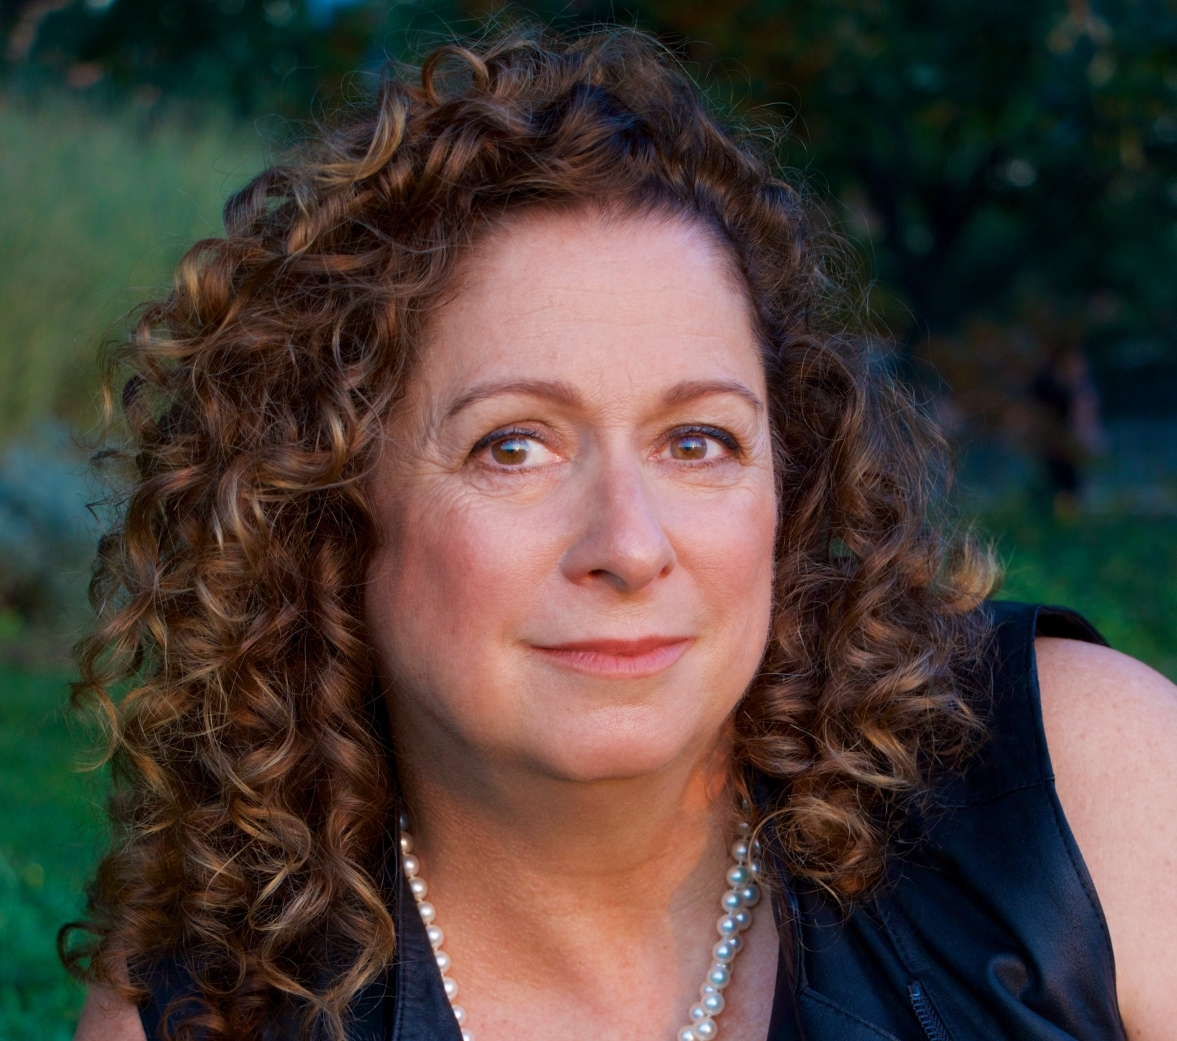 Abigail Disney. Photo: Michael Angelo.